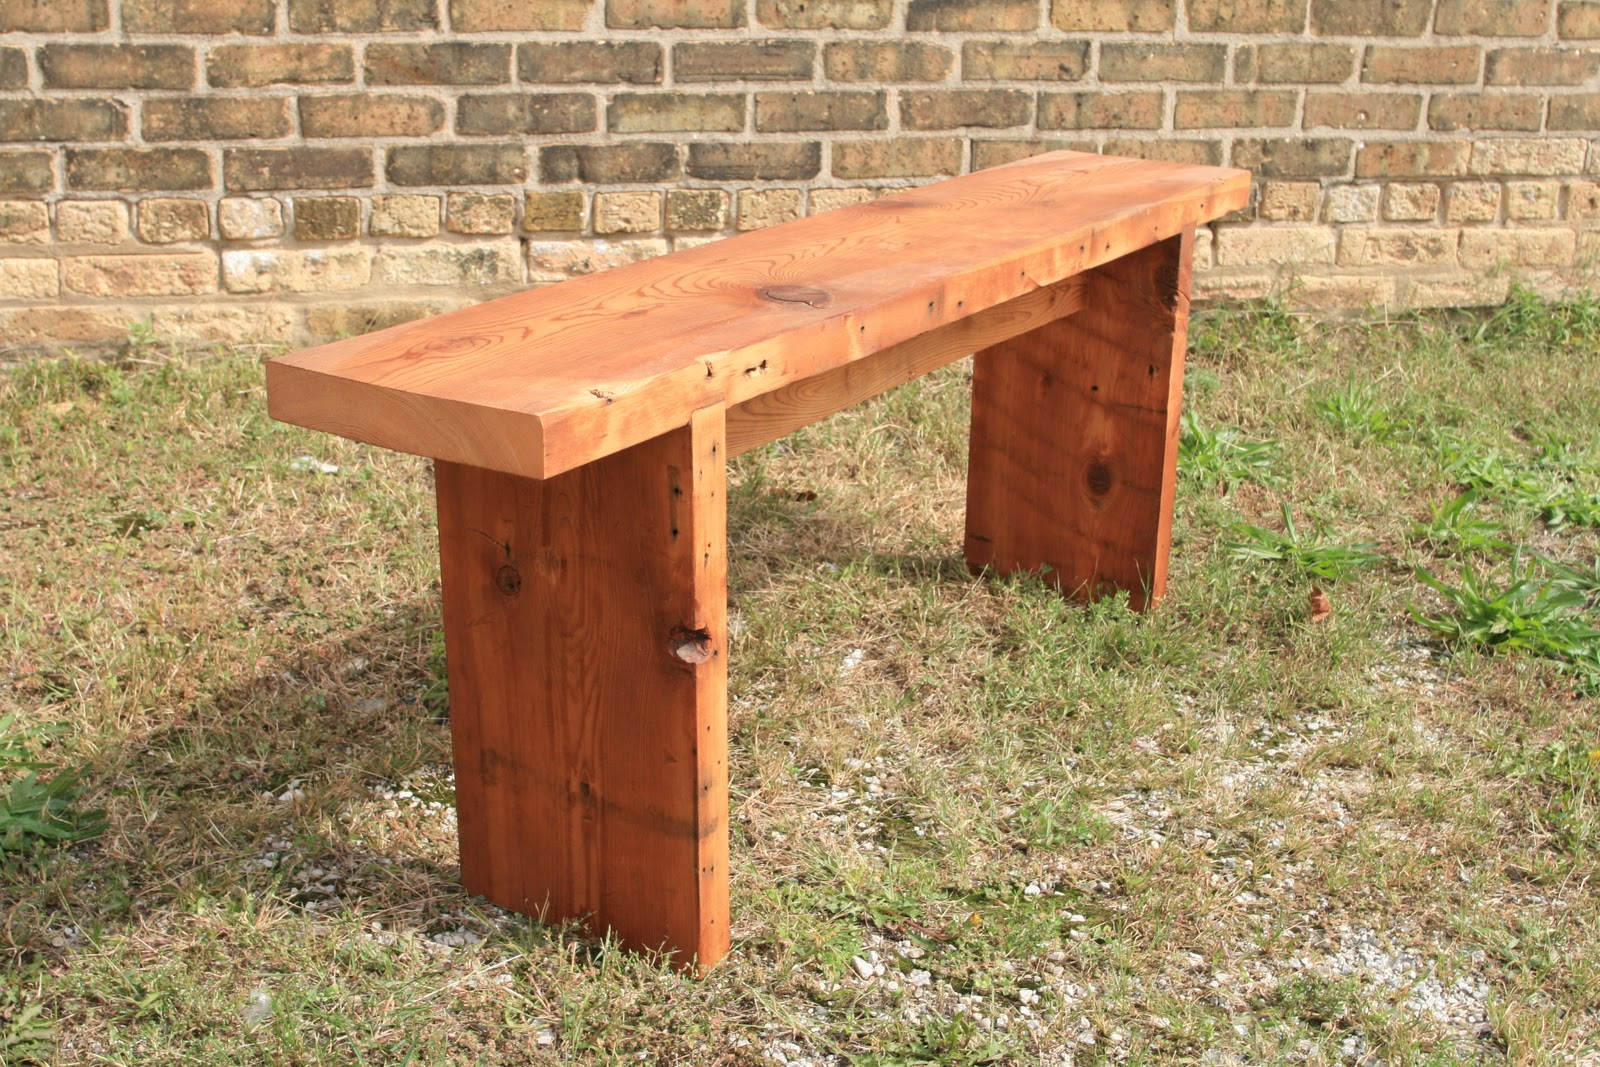 Fantastic Wooden Bench Making Solid Timber Sleeper Benches In The Gmtry Best Dining Table And Chair Ideas Images Gmtryco